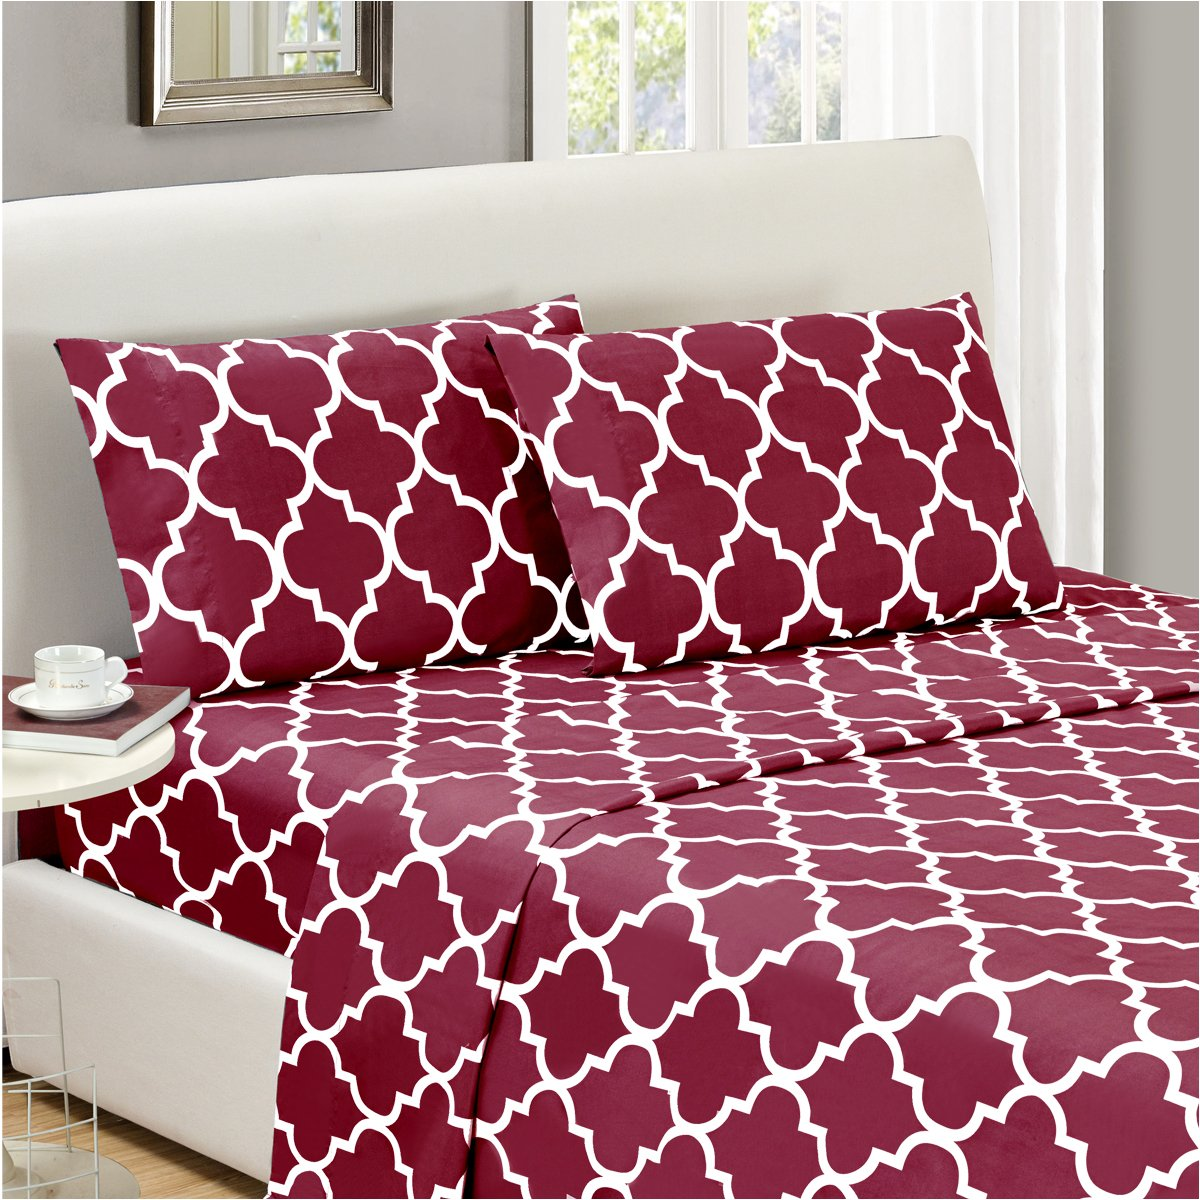 Mellanni Bed Sheet Set Twin-Burgundy